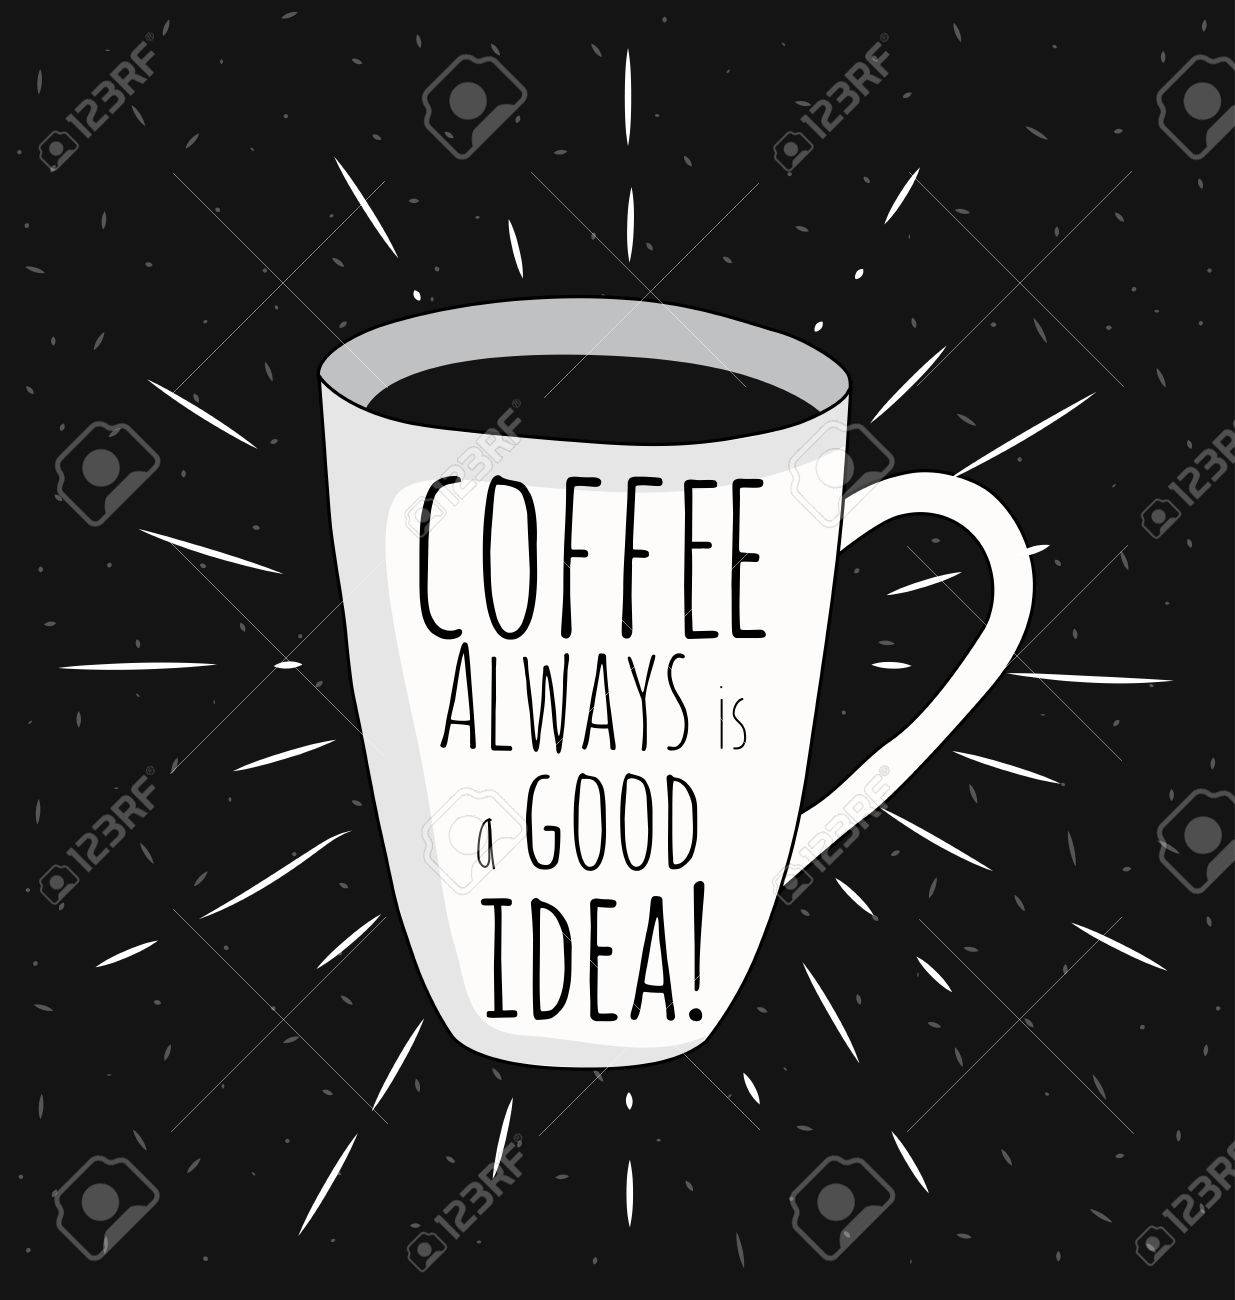 Black And White Motivational Posters Vintage Style Cafe Menu With Calligraphy Coffee Pot Shape